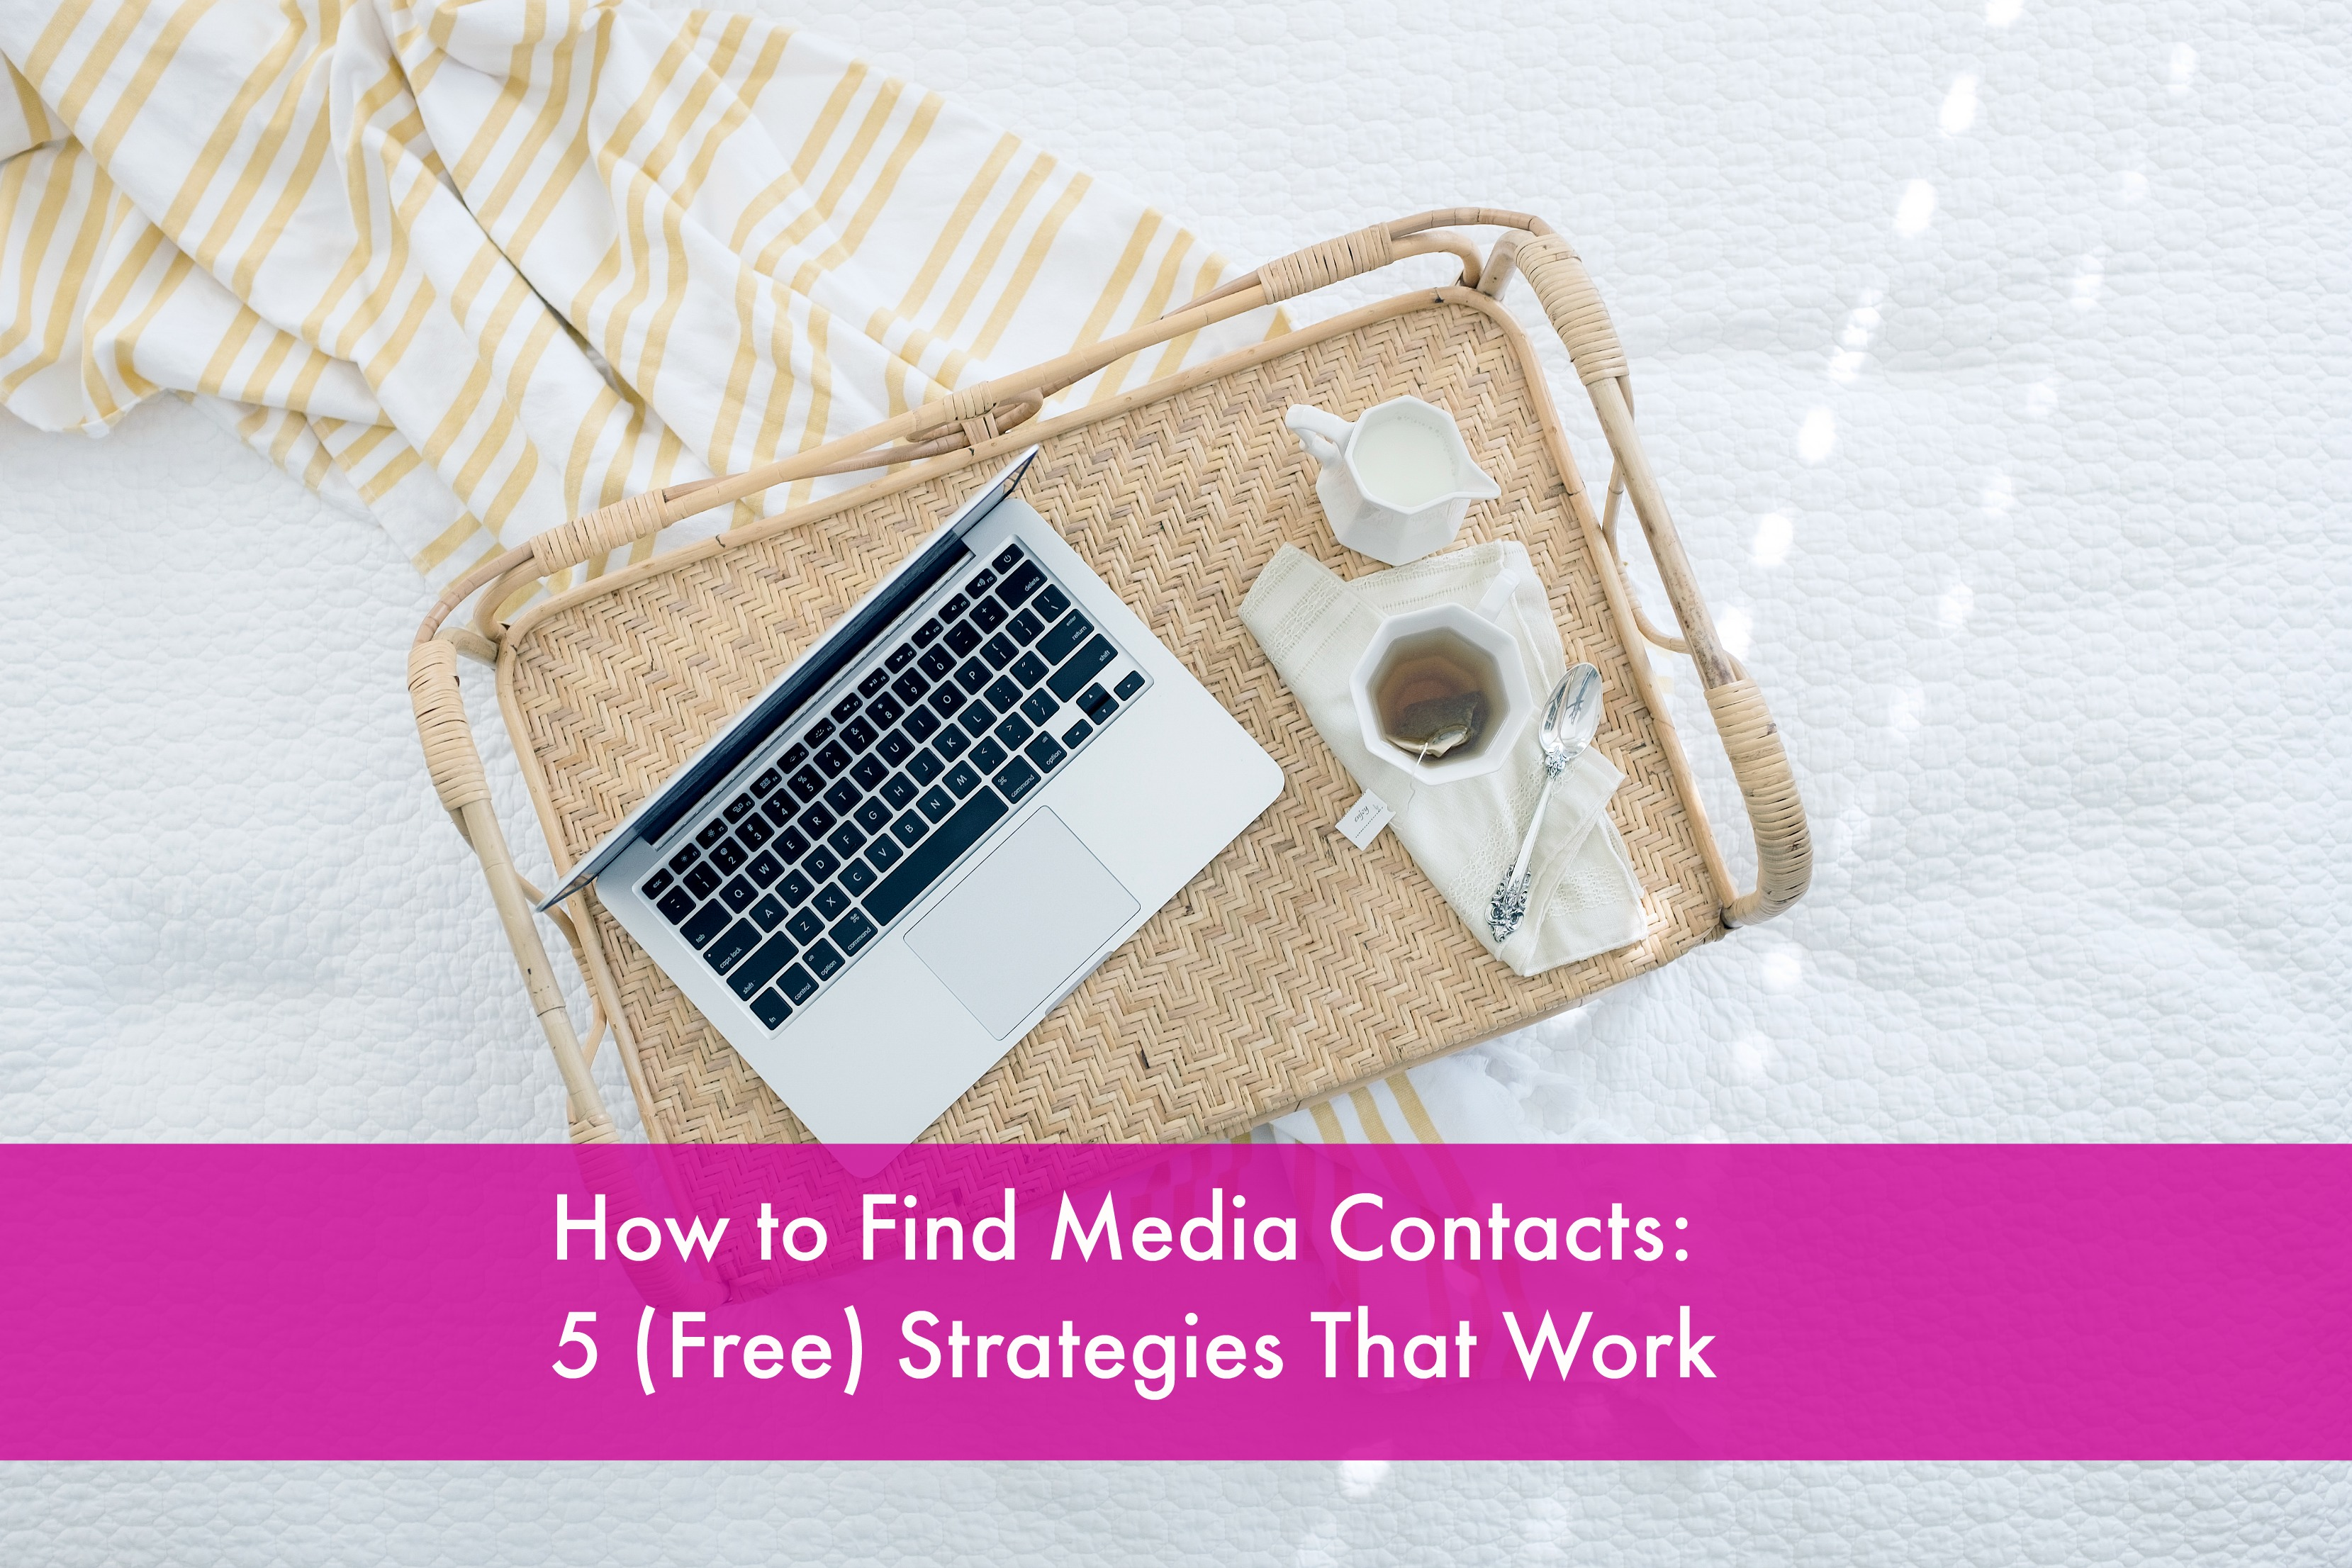 Find Media Contacts